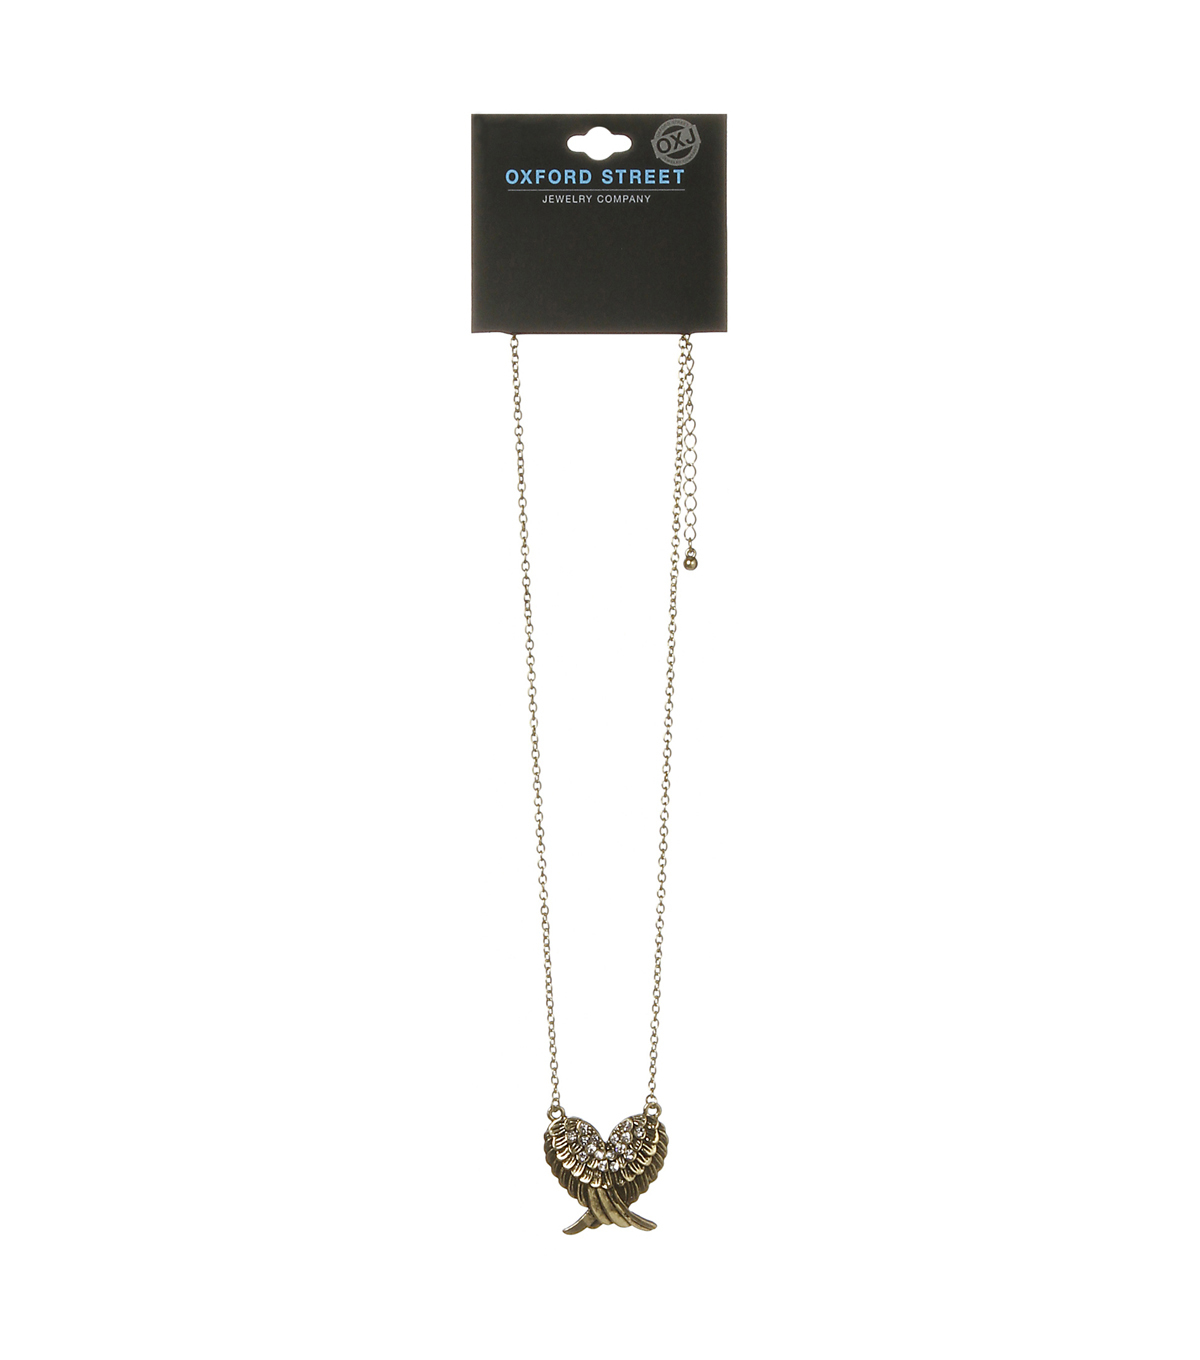 Oxford Street Jewelry Co. Feather Heart Pendant Necklace